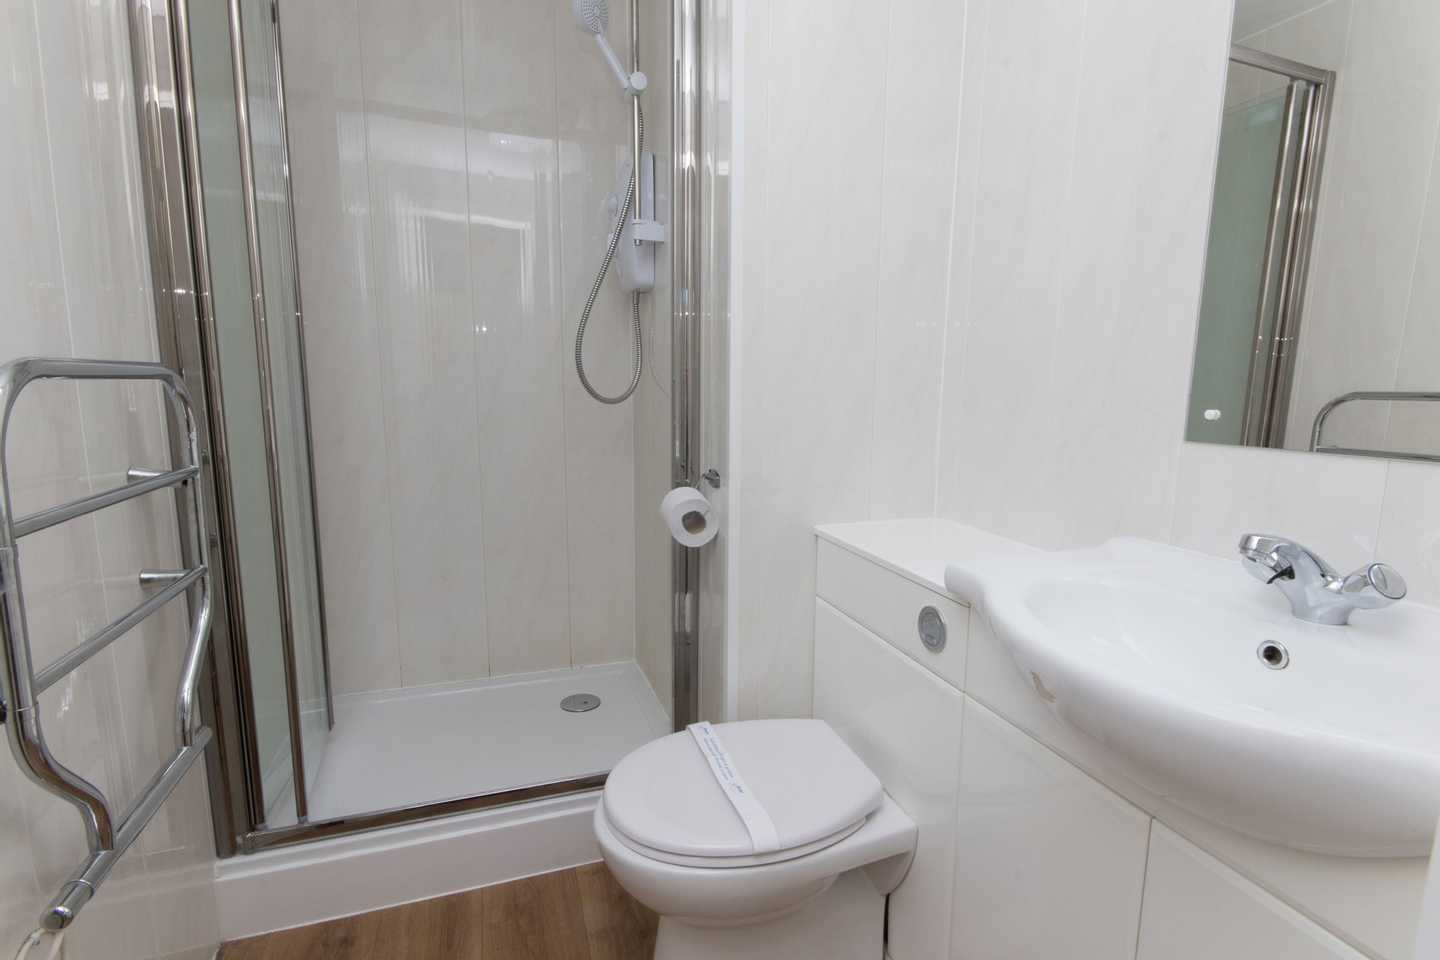 A Comfort apartment bathroom with toilet, sink, shower and mirror